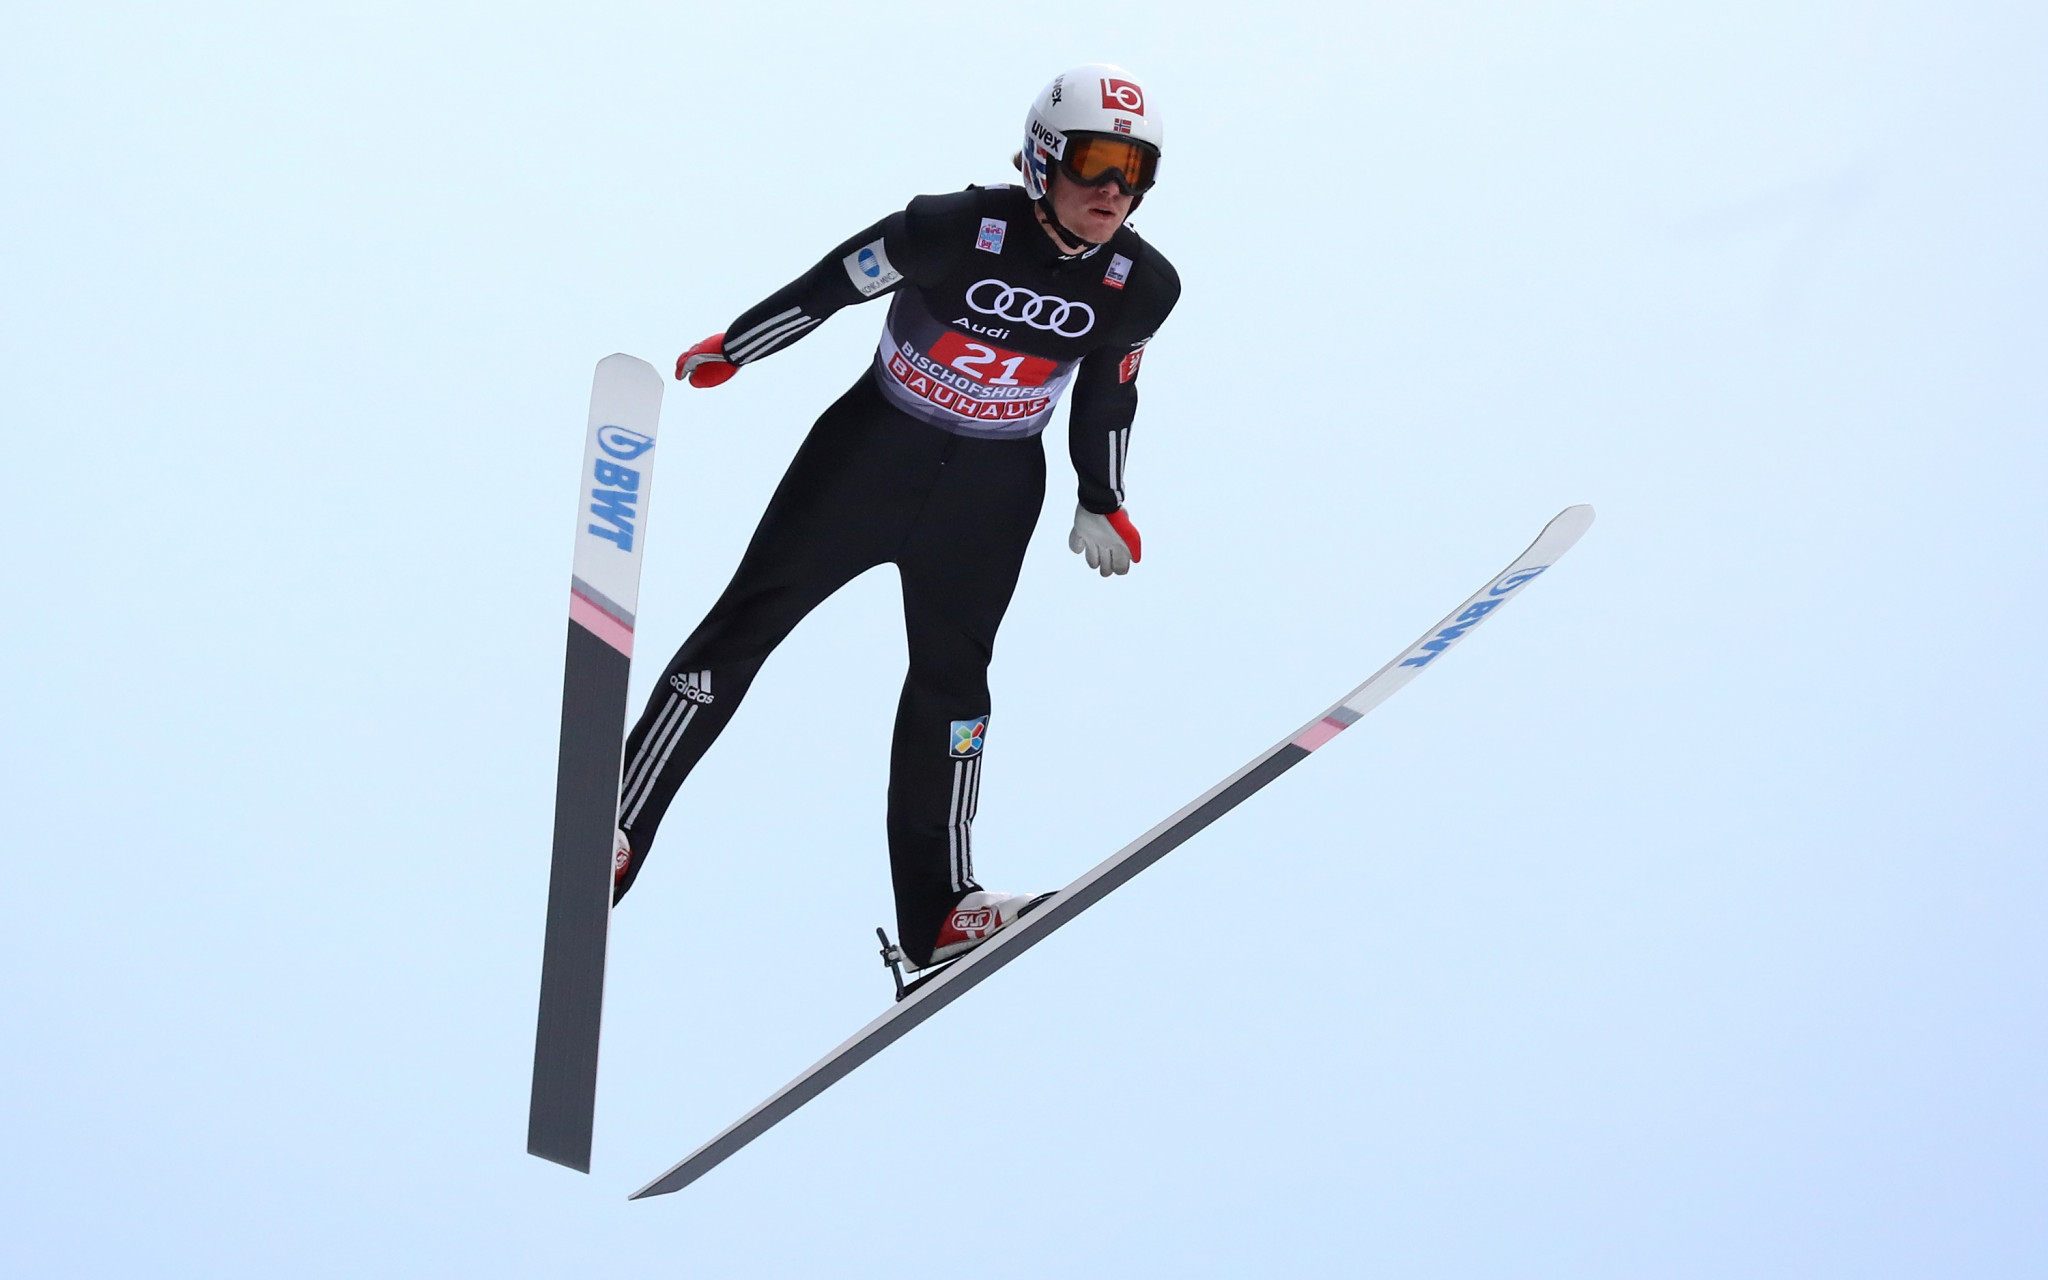 Norwegian duo top ski jump qualification as Stoch fails to reach recent heights in Bad Mitterndorf